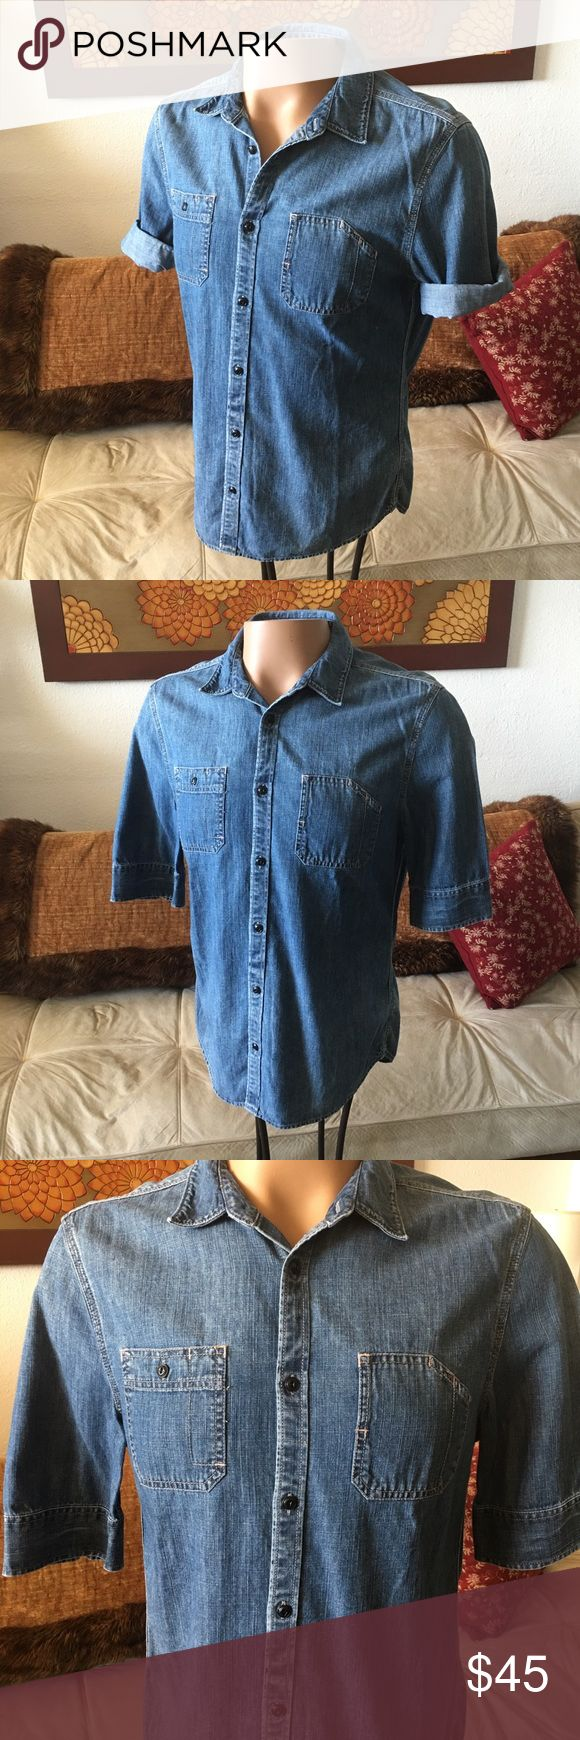 "All Saints Spitalfields 1/2 Sleeve Denim Shirt All Saints Spitalfields 1/2 Sleeve Denim Shirt. Men's size large. Seems to run slightly small and may fit a size medium. Armpit to armpit- 19.5"" shoulder to shoulder- 17.5"" neck to bottom- 28"". No issues to note. In overall very good condition. Thank you. All Saints Shirts Casual Button Down Shirts"